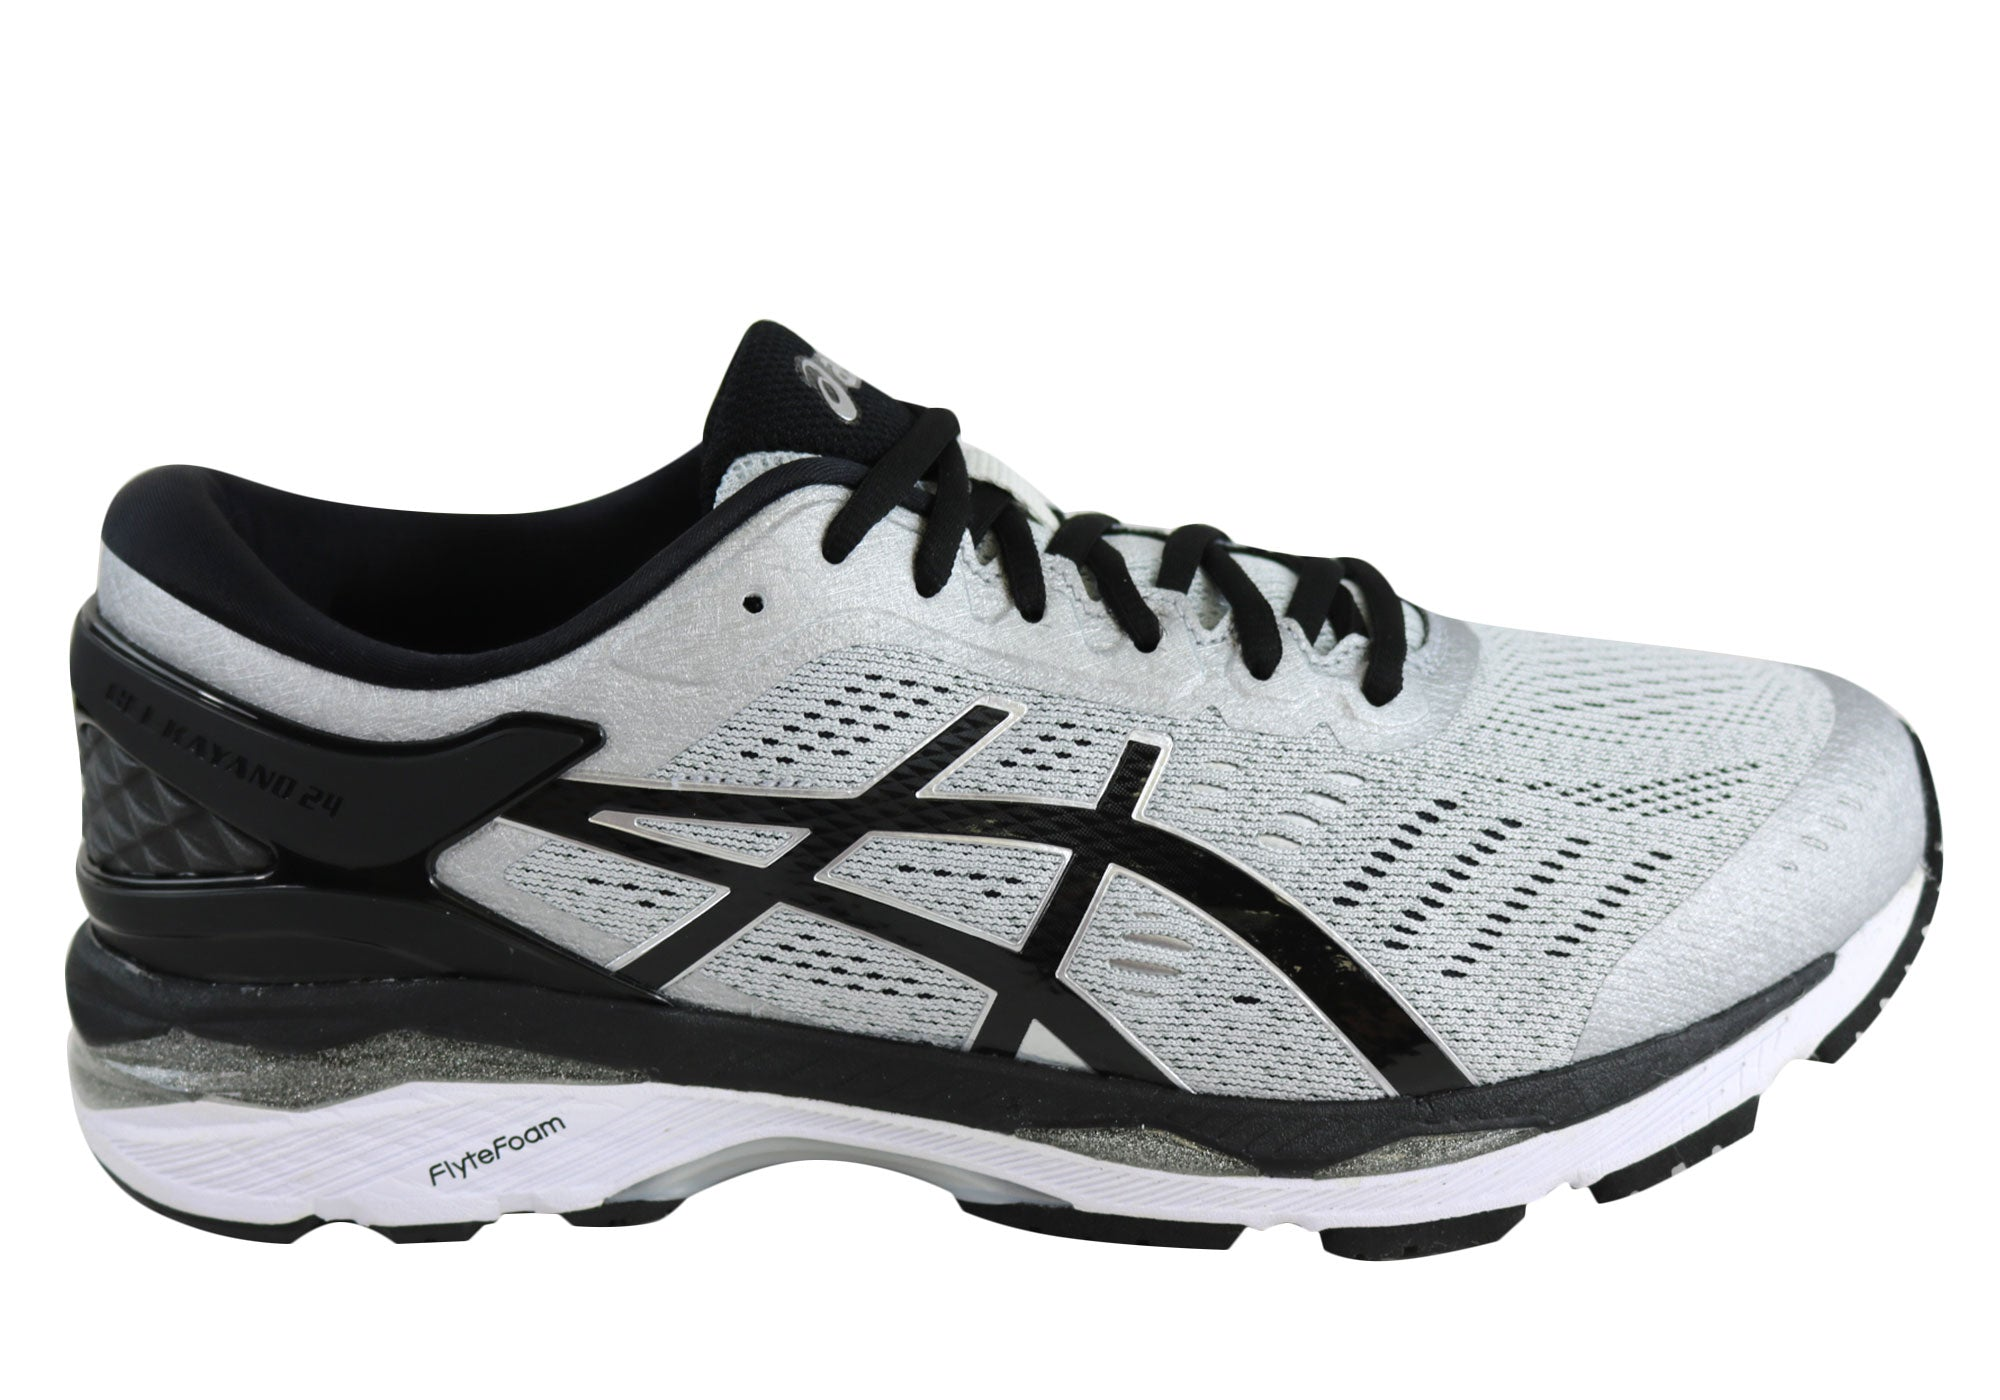 NEW-ASICS-GEL-KAYANO-24-MENS-RUNNING-SPORT-SHOES-D-WIDTH-STANDARD-FITTING